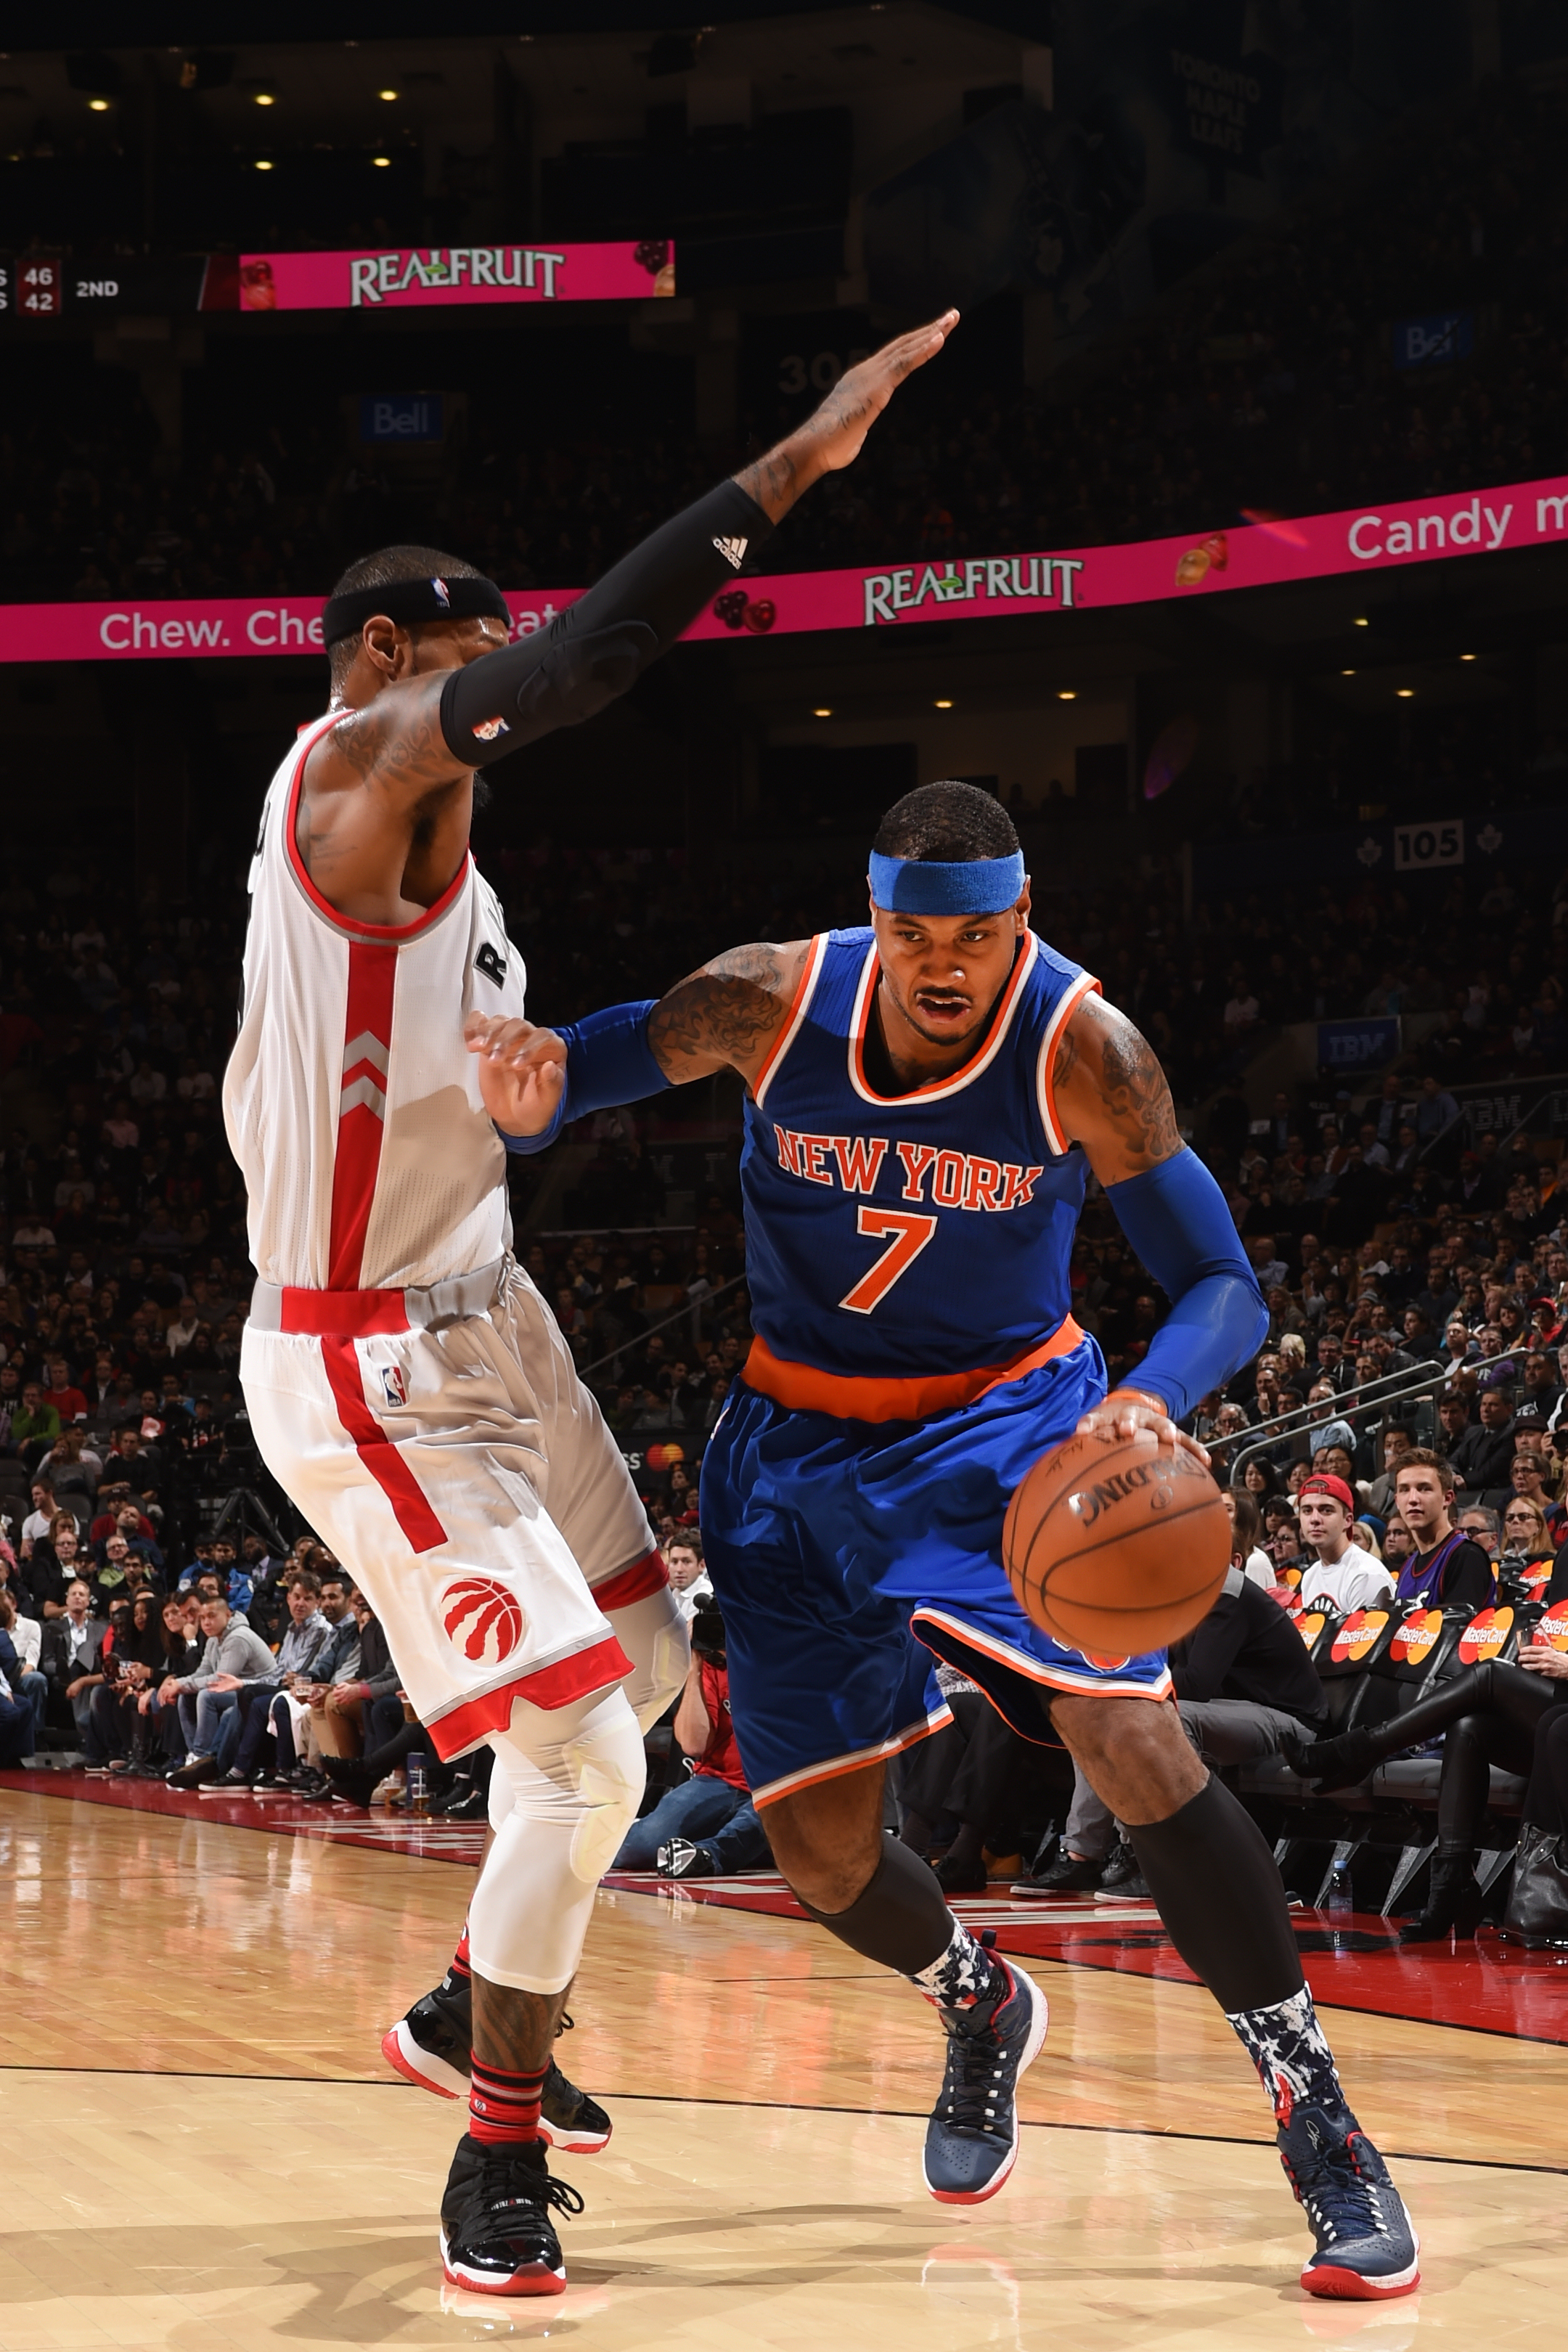 TORONTO, CA - NOVEMBER 10: Carmelo Anthony #7 of the New York Knicks drives to the basket against the Toronto Raptors during the game on November 10, 2015 at Air Canada Centre in Toronto, Canada. (Photo by Ron Turenne/NBAE via Getty Images)